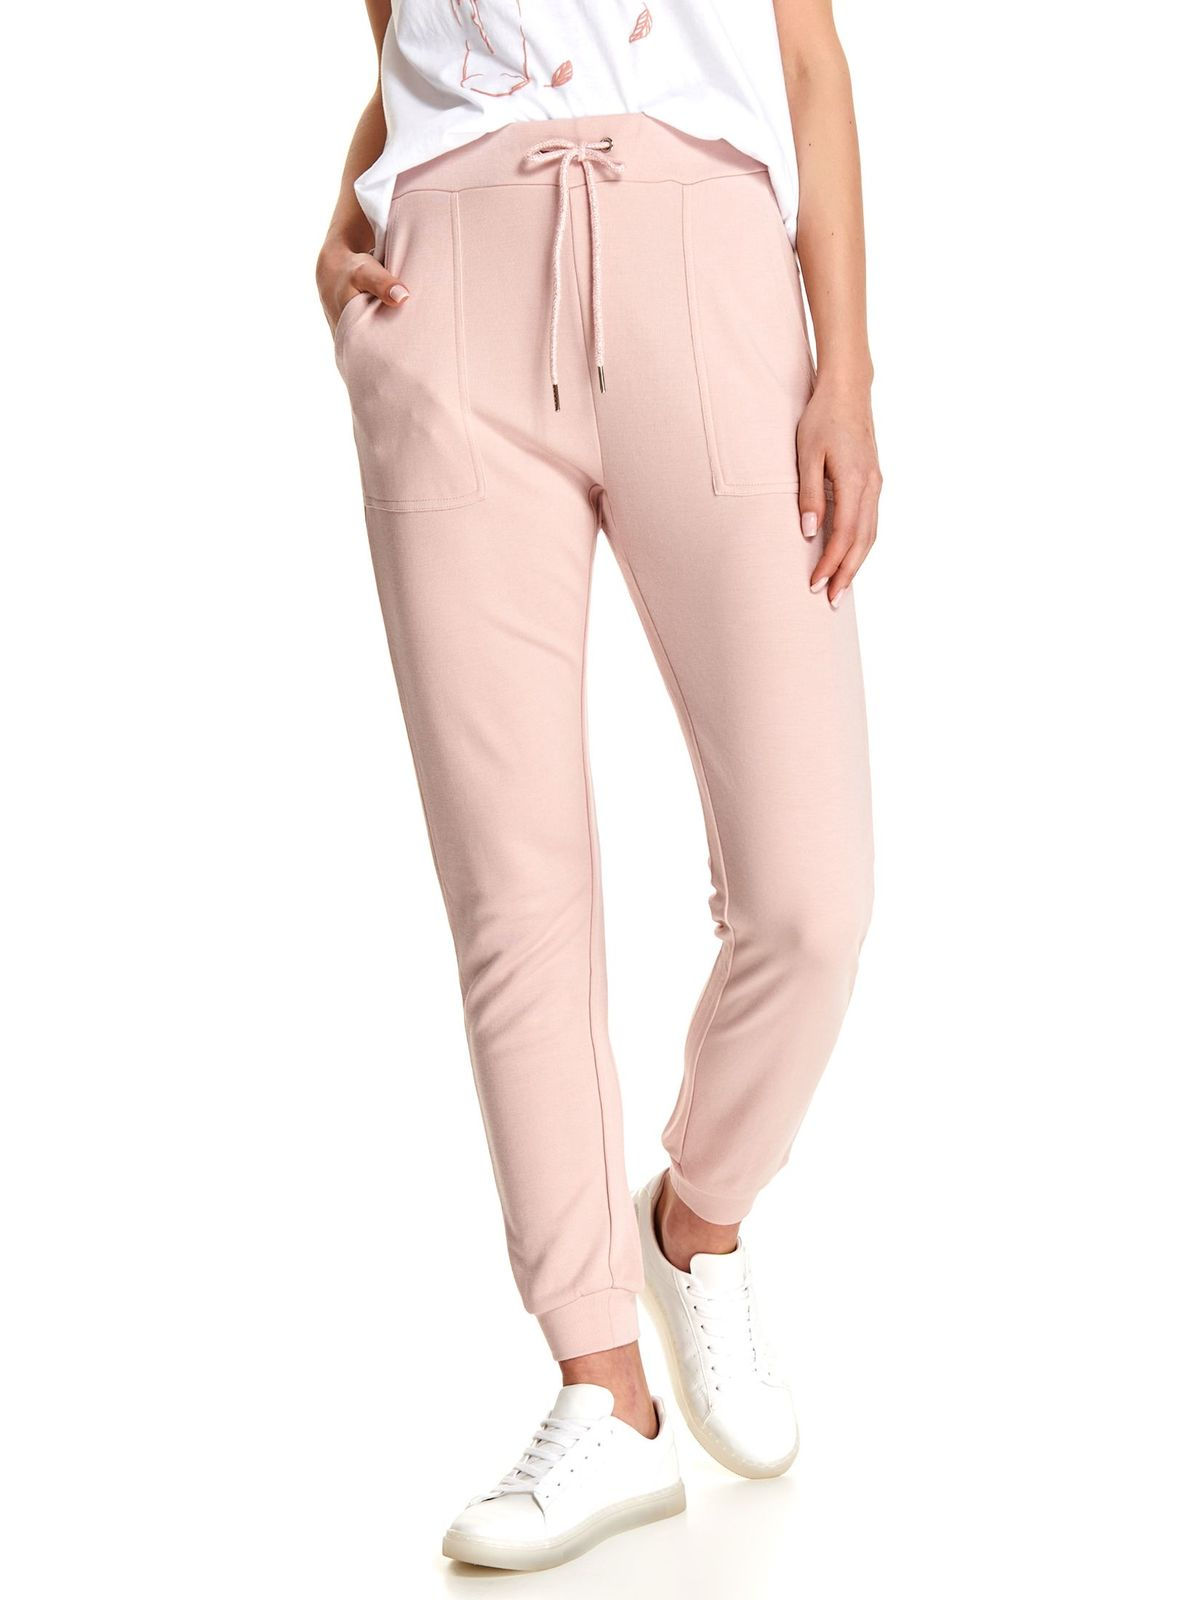 Lightpink trousers